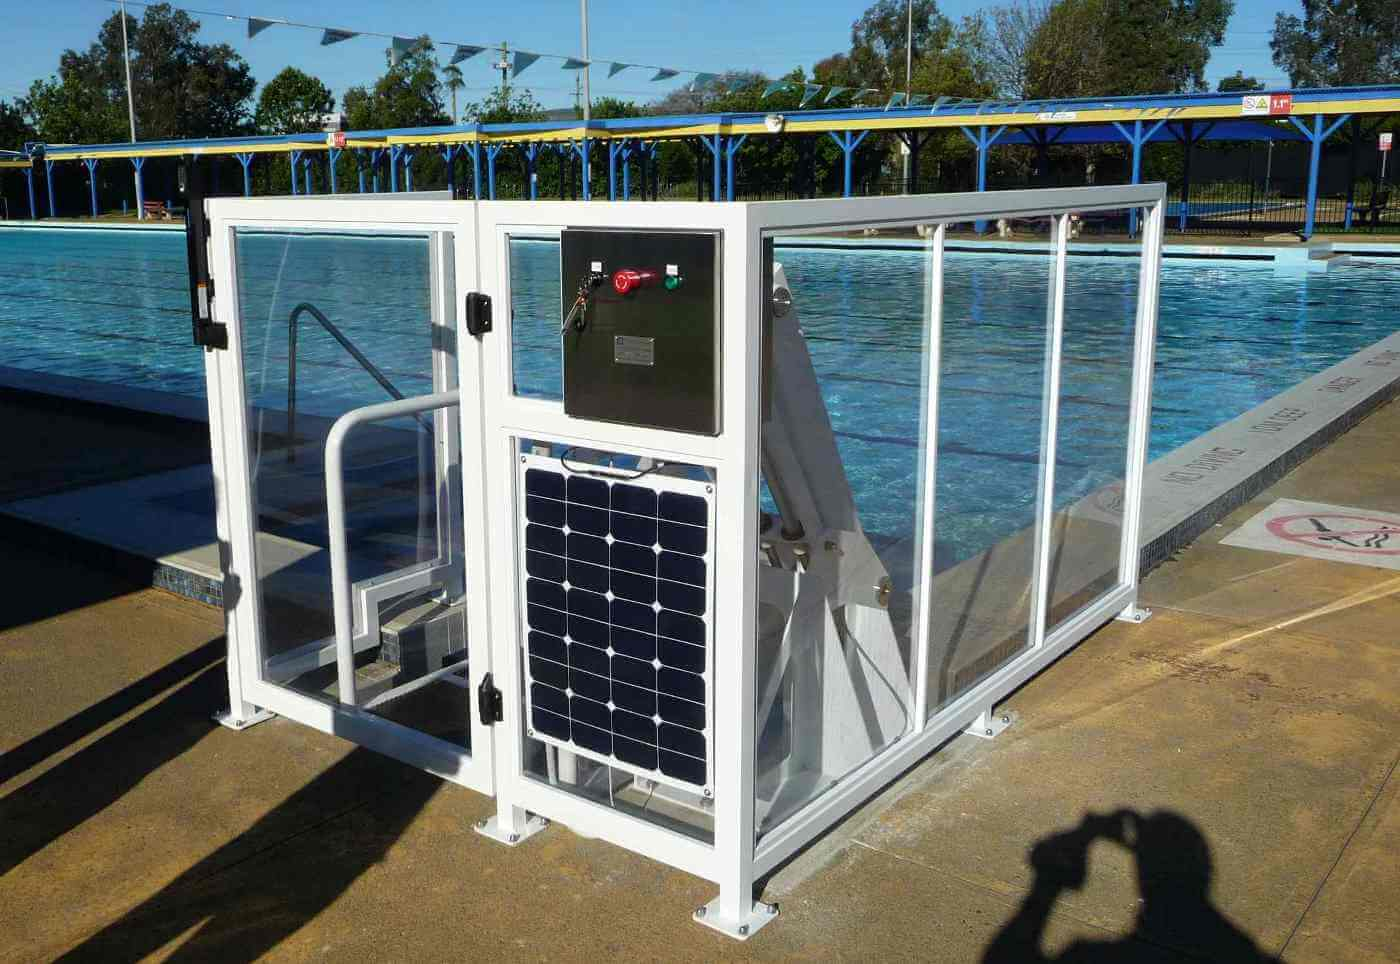 Dapto pool Unanderra has a solar powered lift for easy access